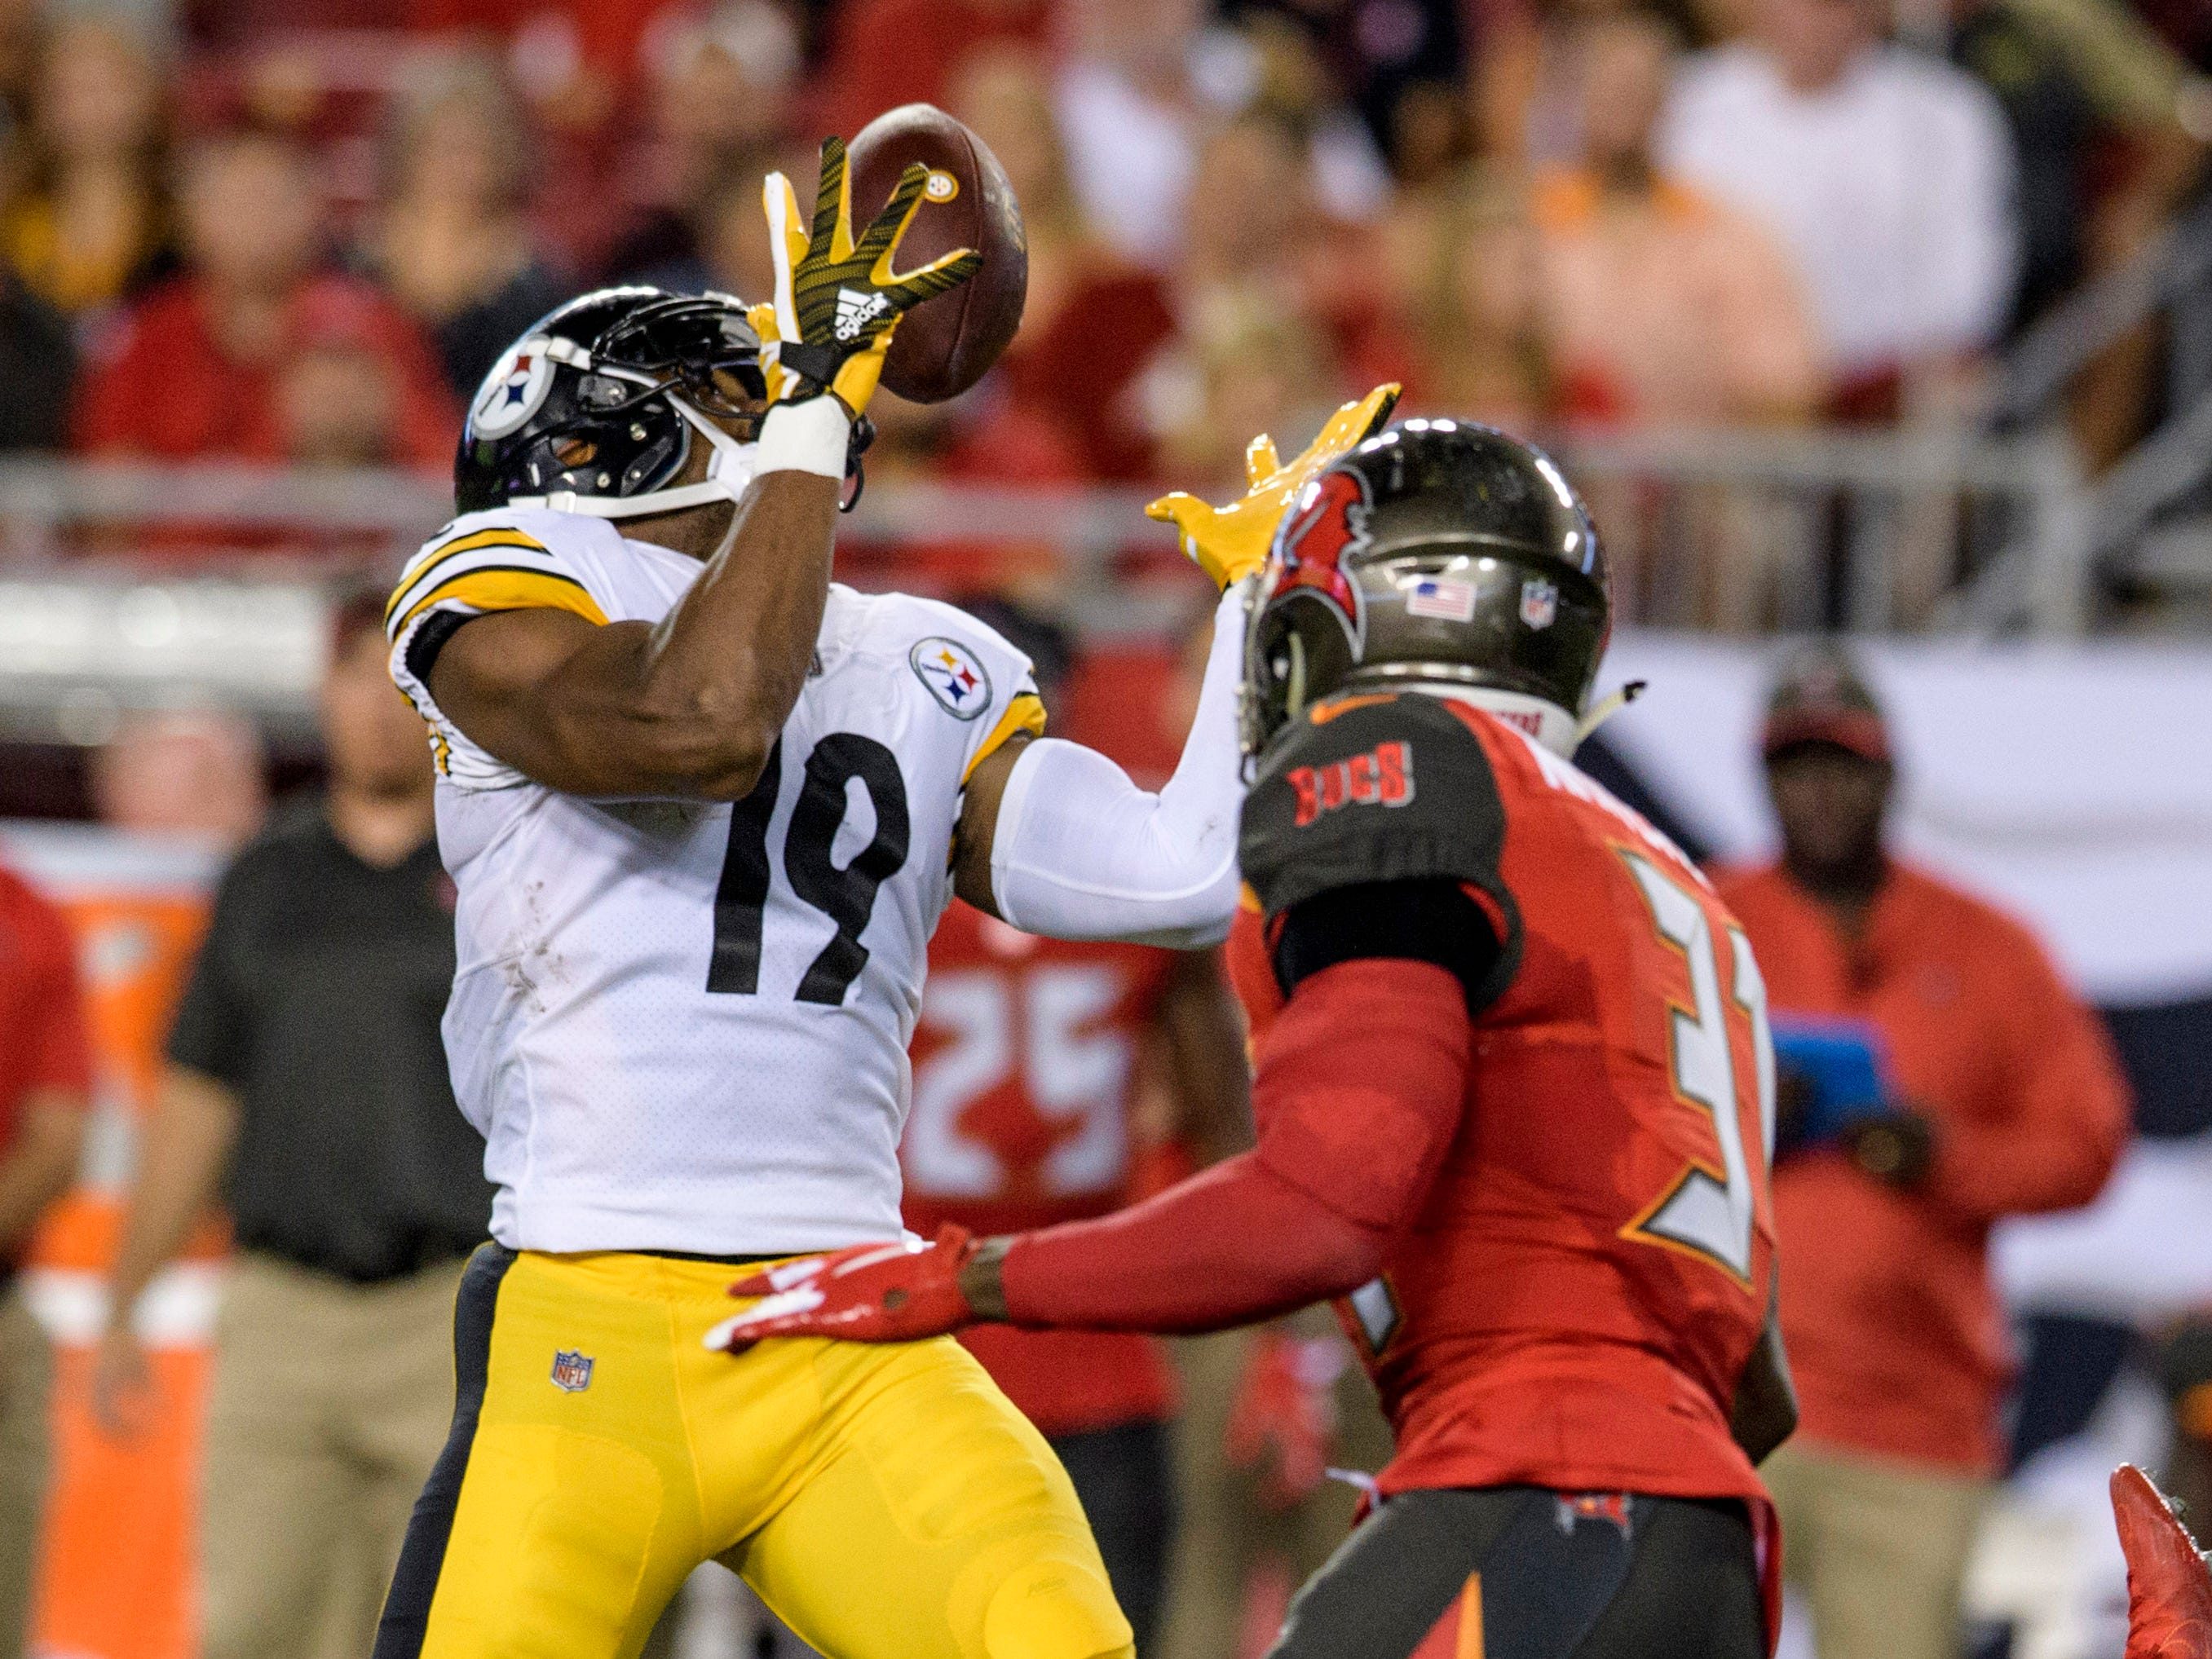 Pittsburgh Steelers wide receiver JuJu Smith-Schuster catches the ball in front of Tampa Bay Buccaneers safety Jordan Whitehead.